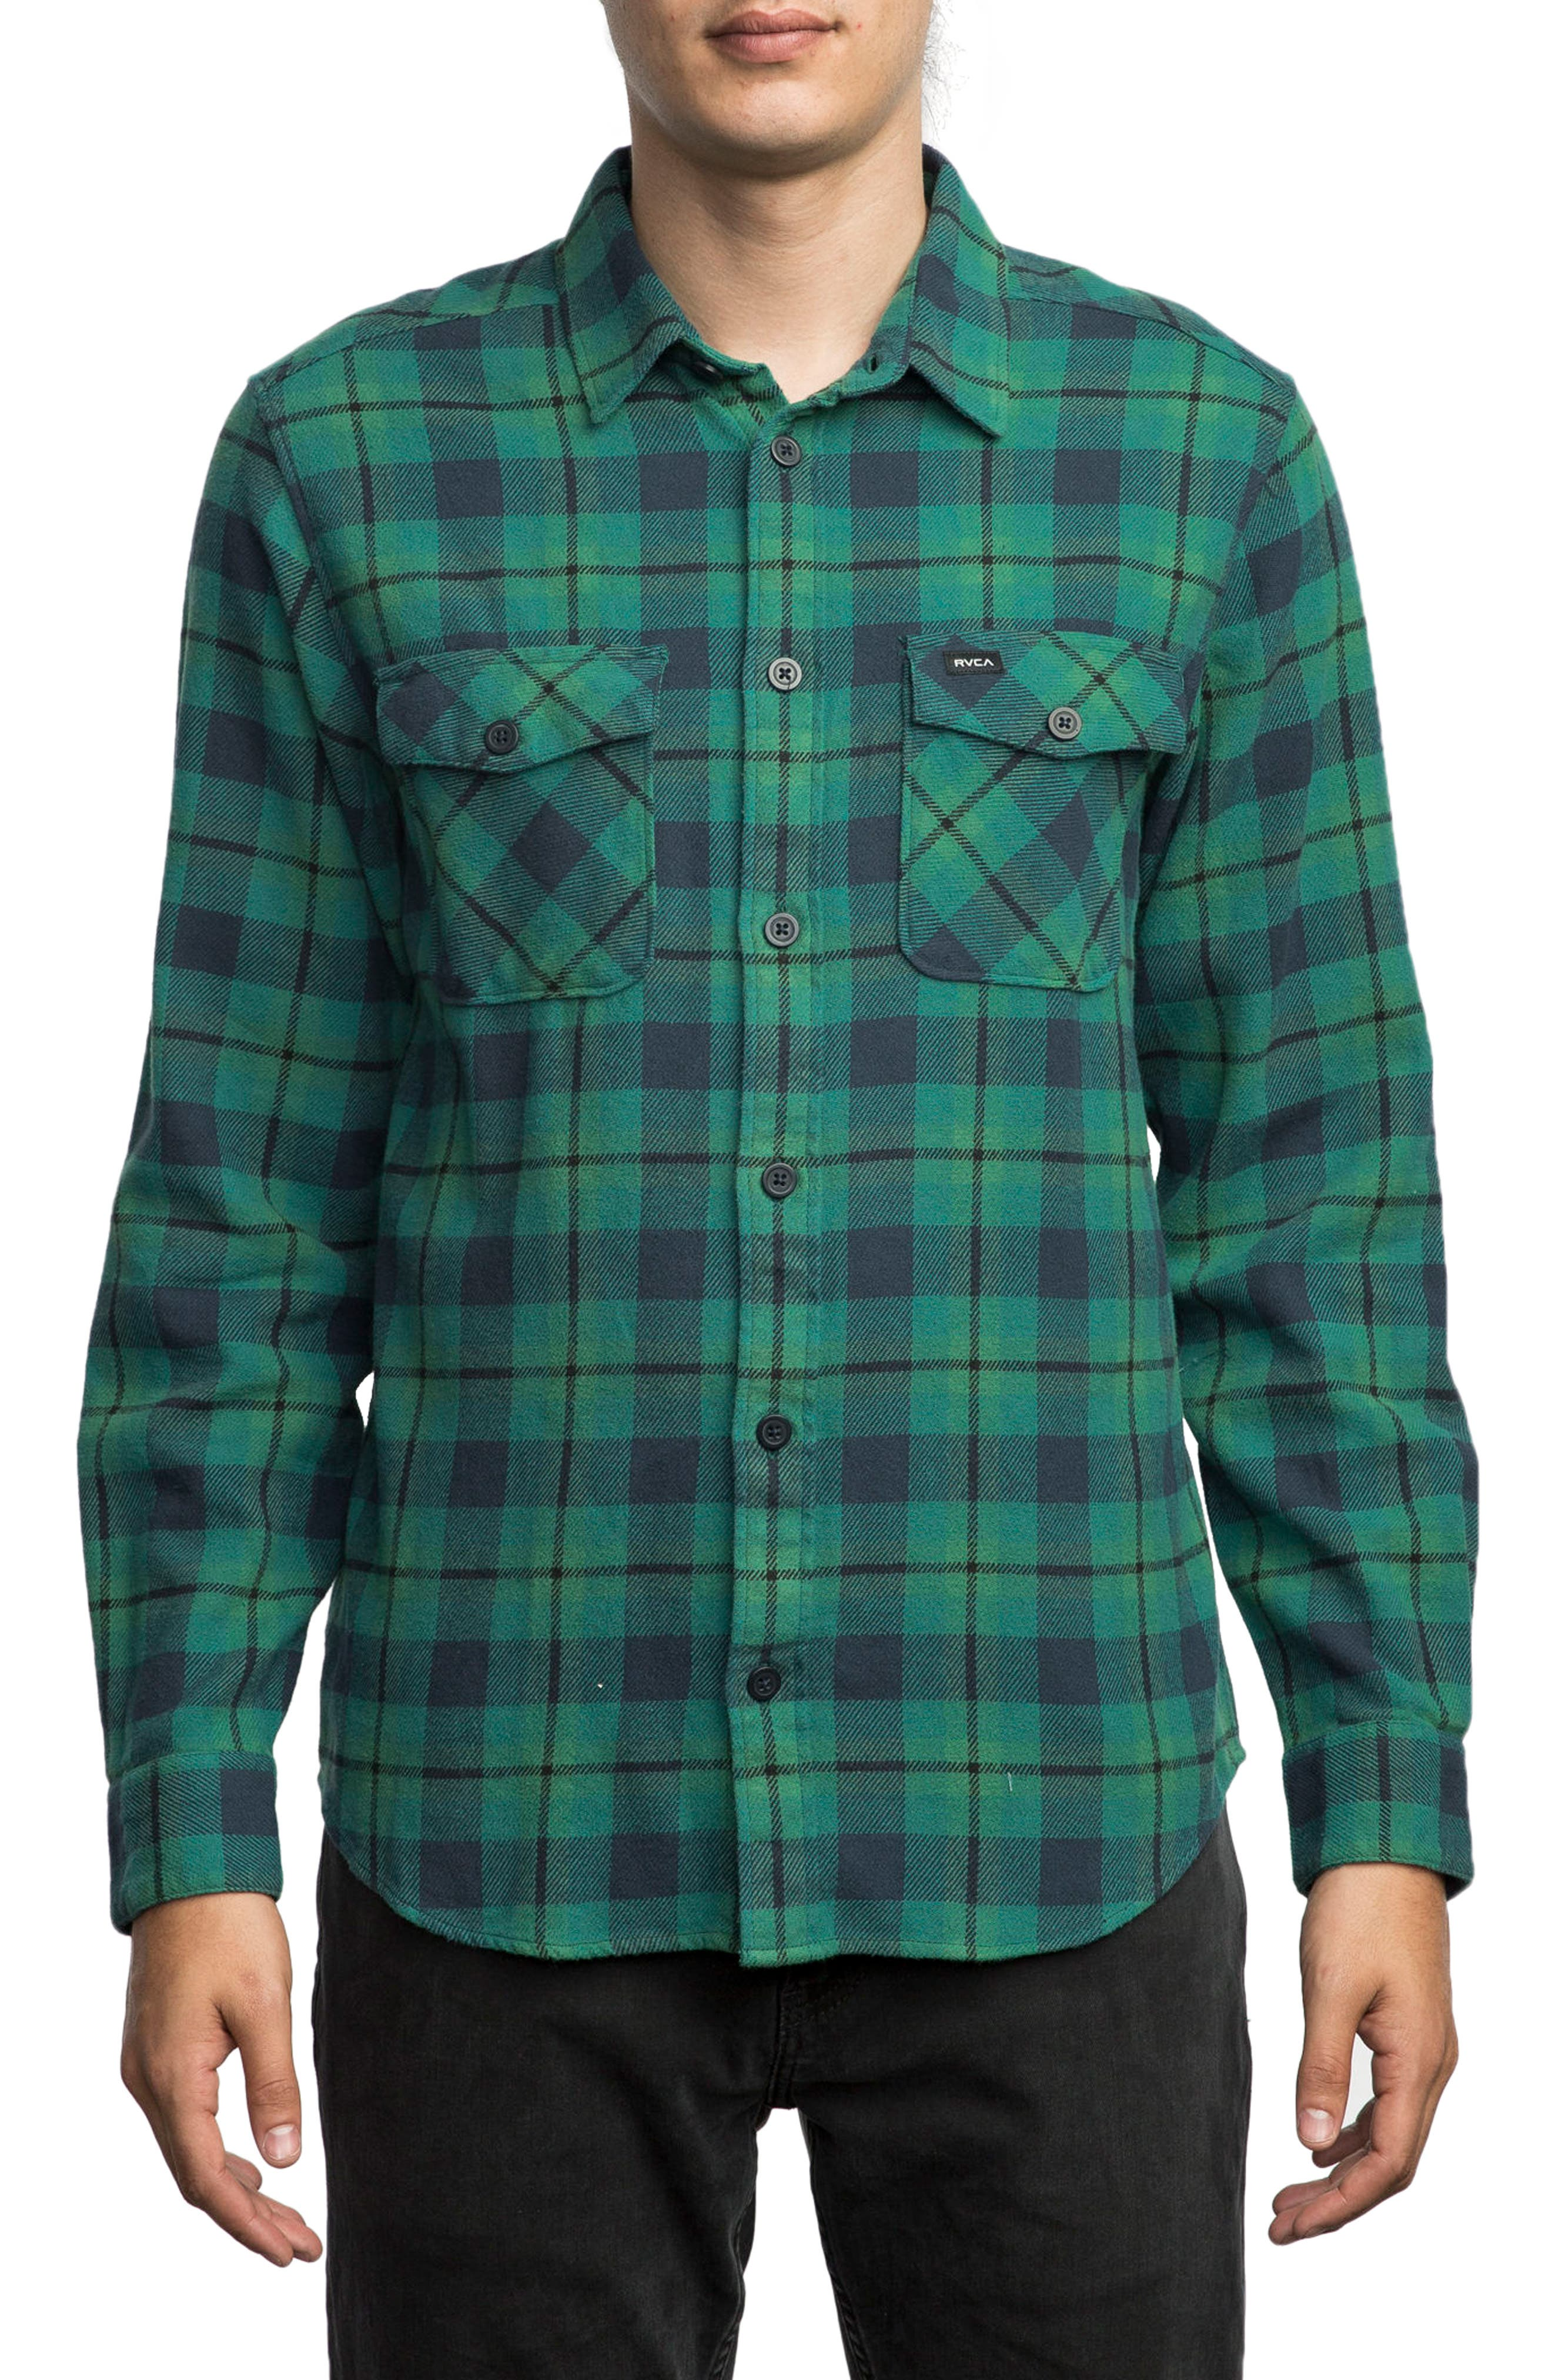 'That'll Work' Trim Fit Plaid Flannel Shirt,                         Main,                         color, Teal Green